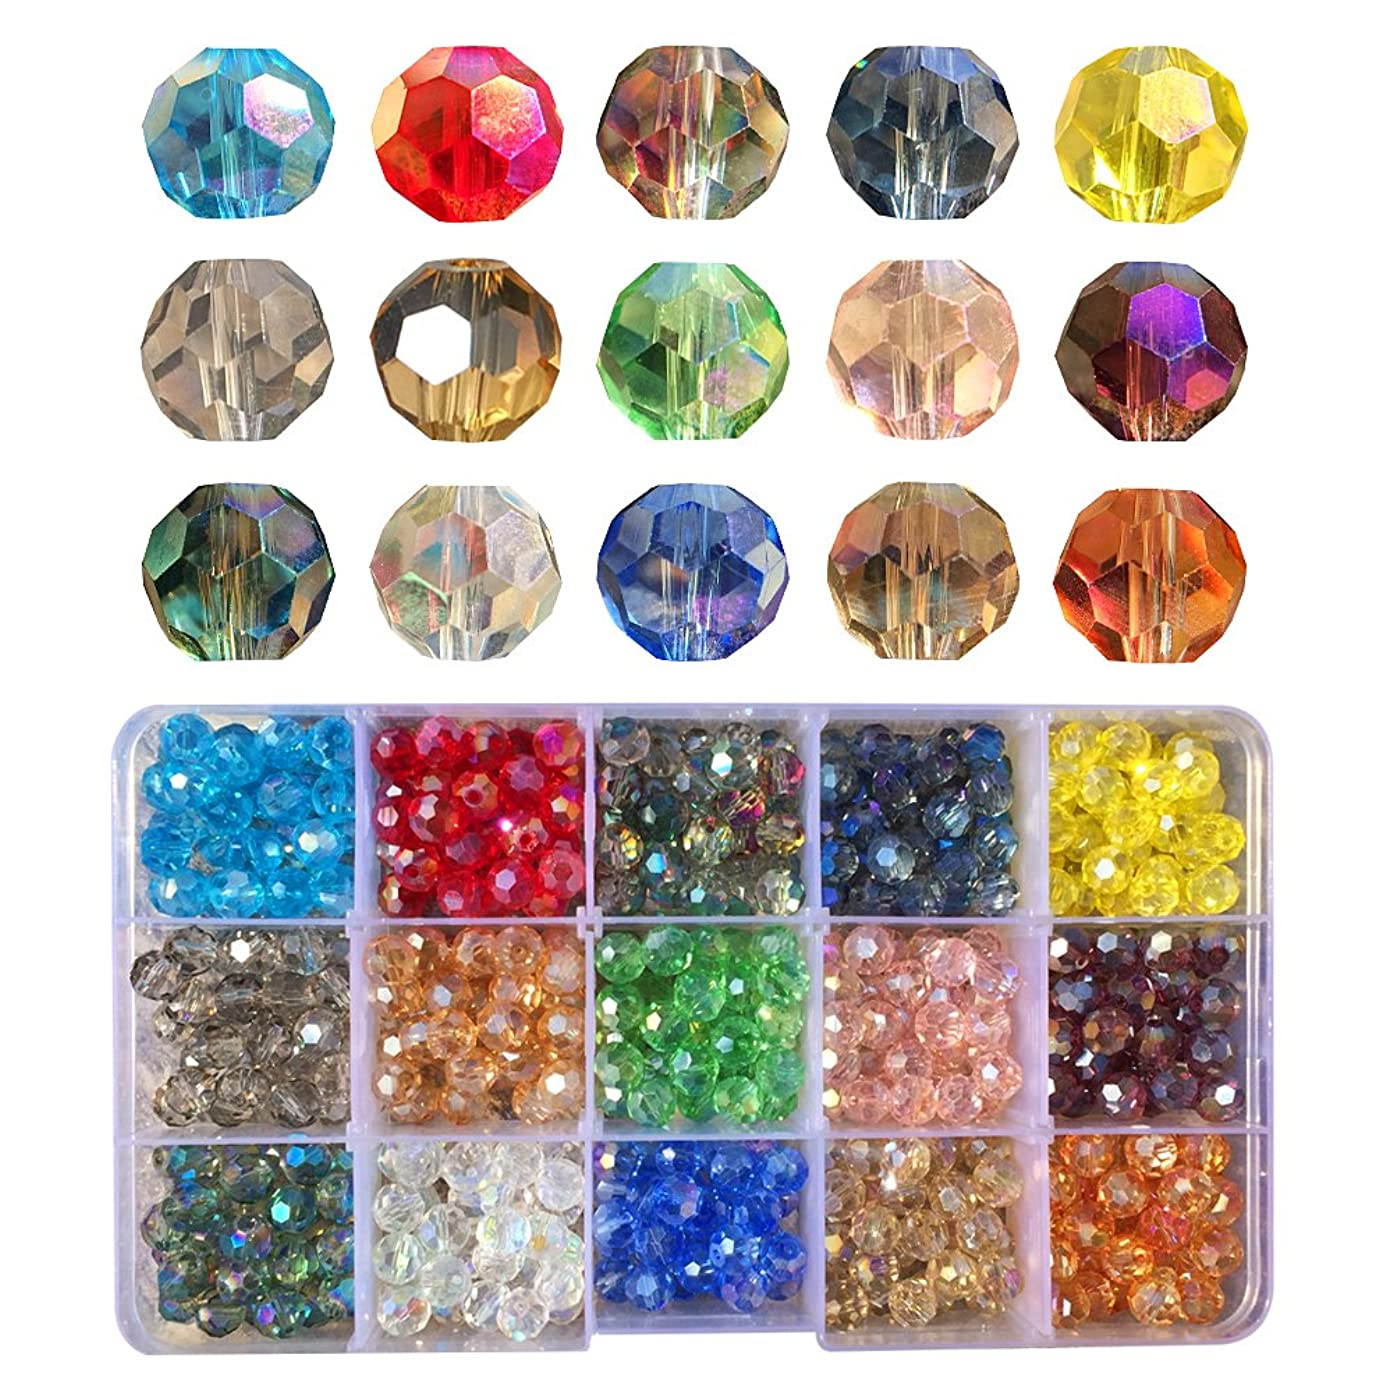 Chengmu 8mm Round Glass Beads for Jewelry Making Faceted Shape 450pcs AB Colorful Like Rainbow Crystal Spacer Beads Assortments Supplies for Bracelet Necklace with Elastic Cord Storage Box